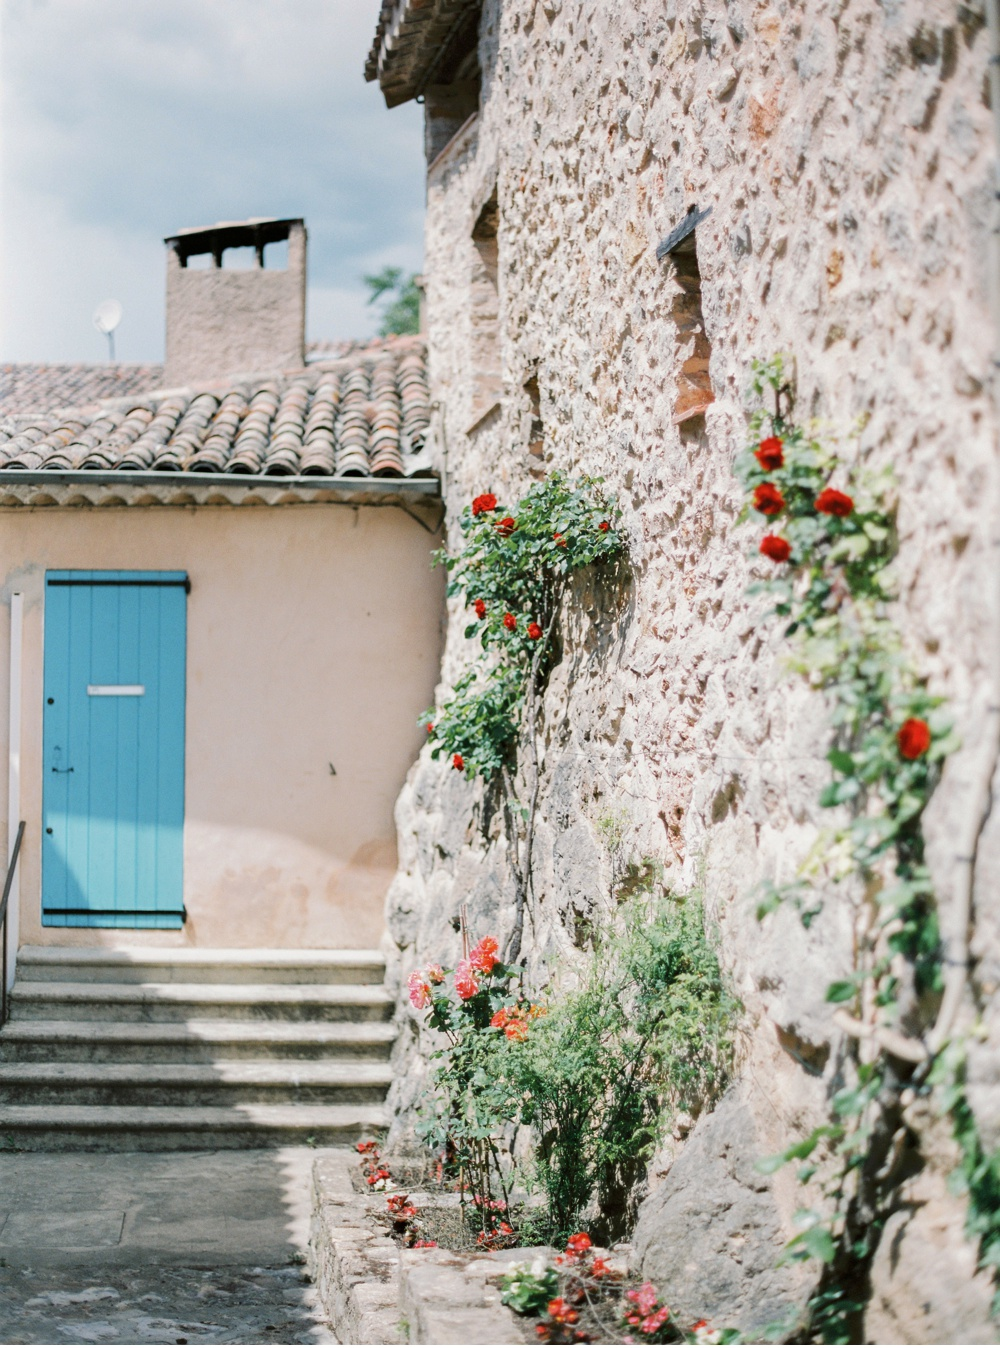 Provence_France_WeddingPhotographer©MadalinaSheldon_0034.jpg